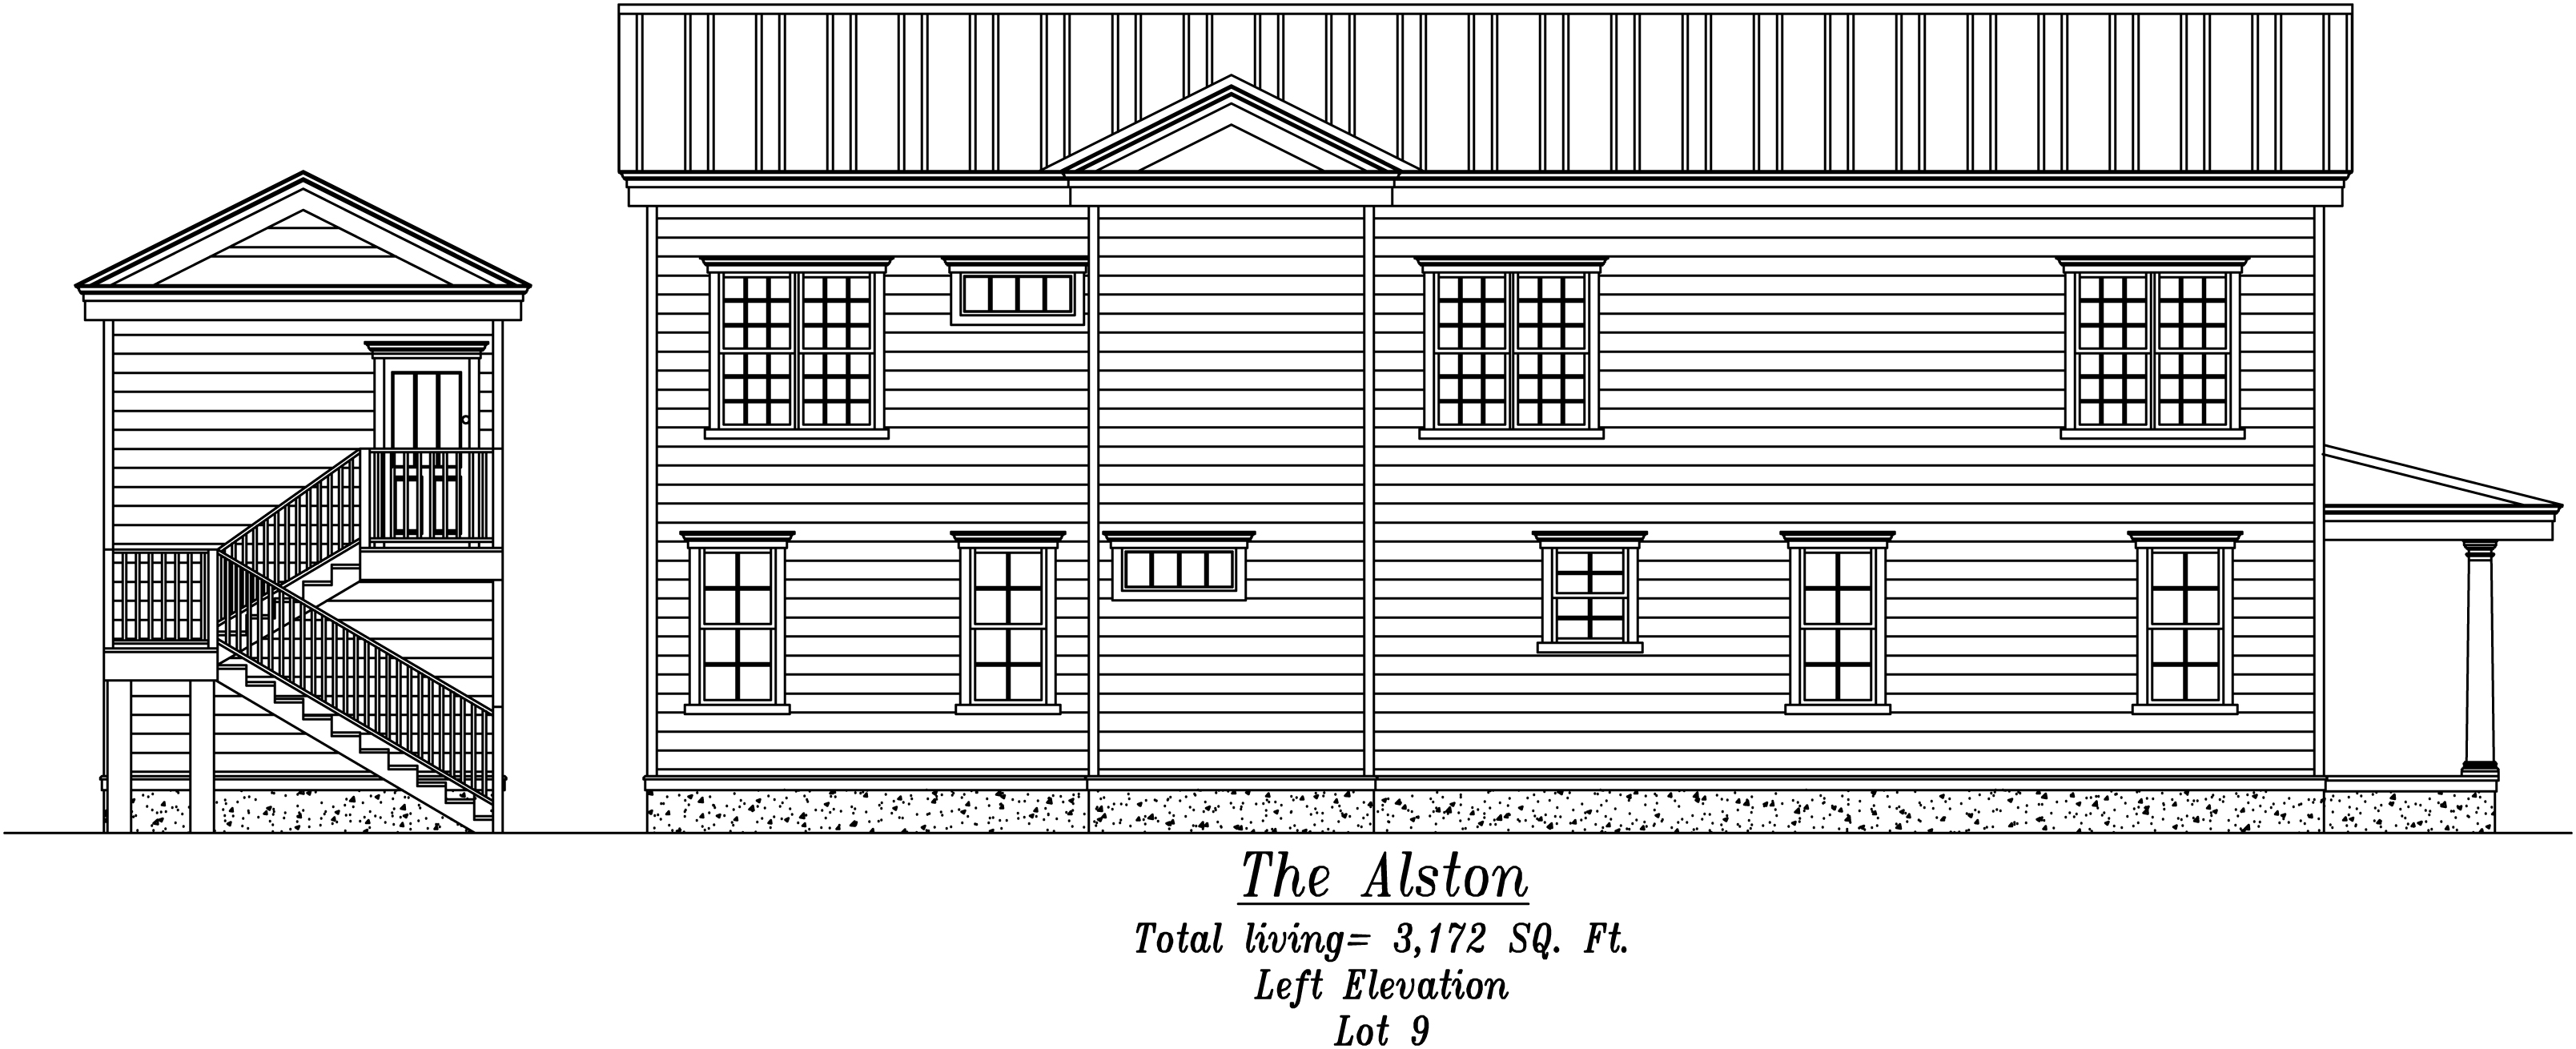 Alston Left Elevation